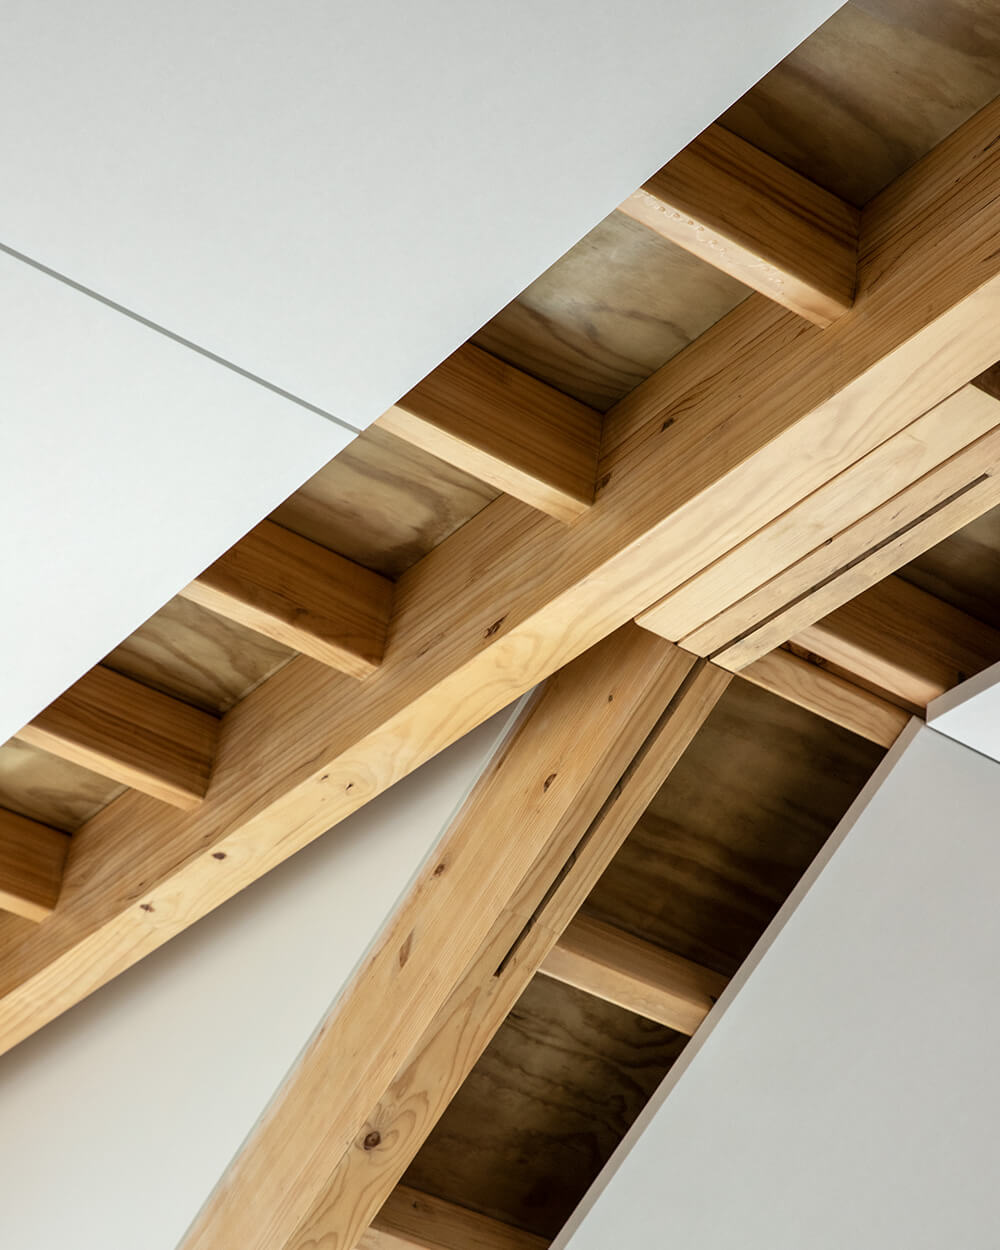 Exposed timber roof portals